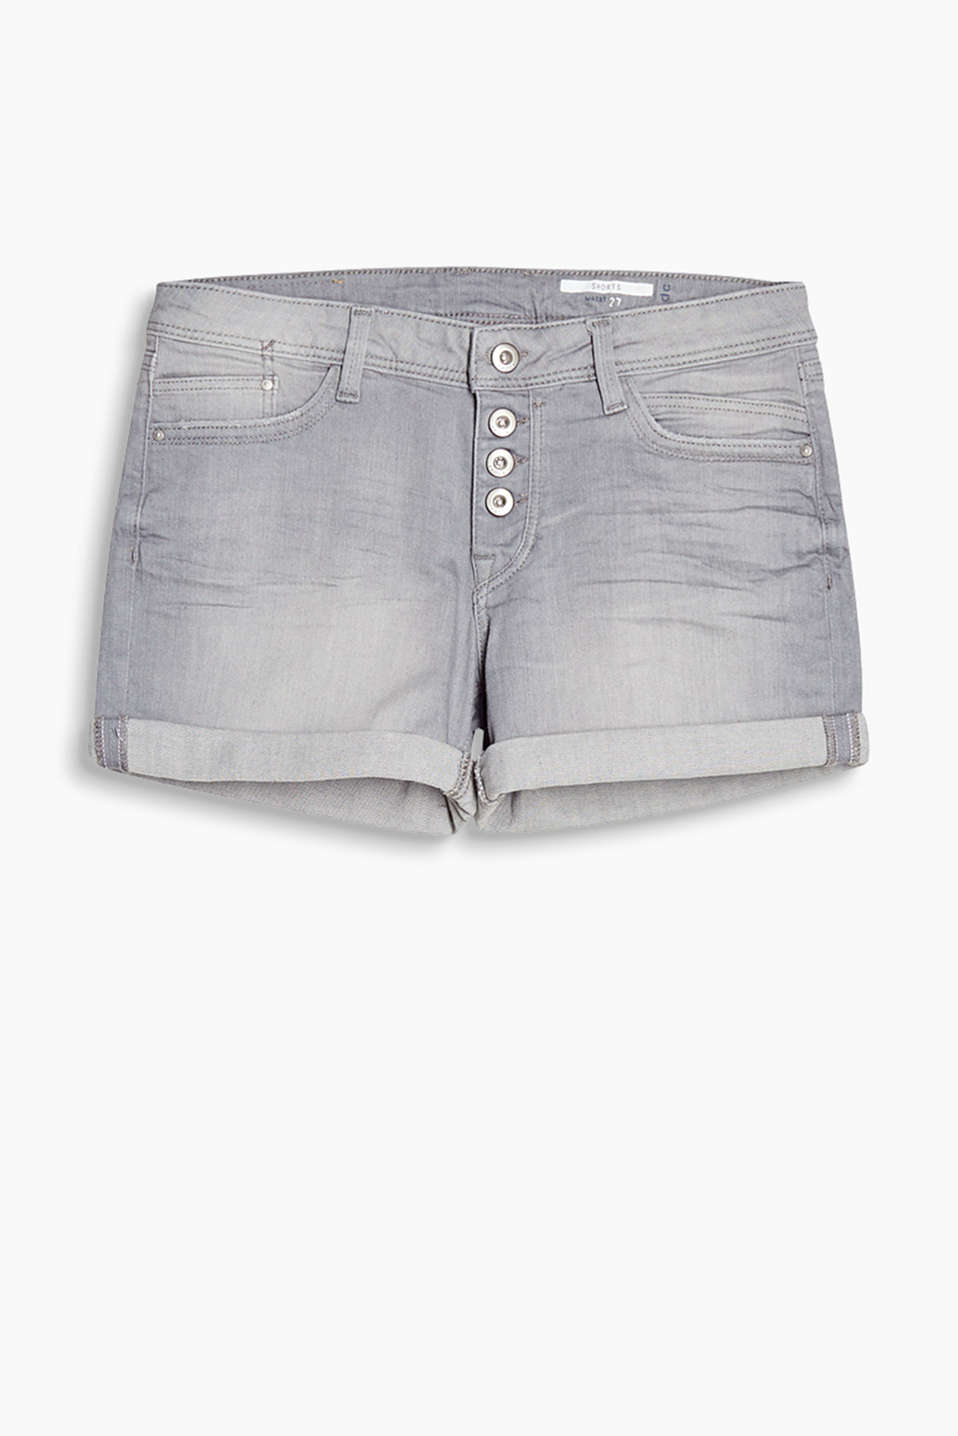 Denim shorts in cotton with a percentage of stretch with urban garment-washed effects and whiskering